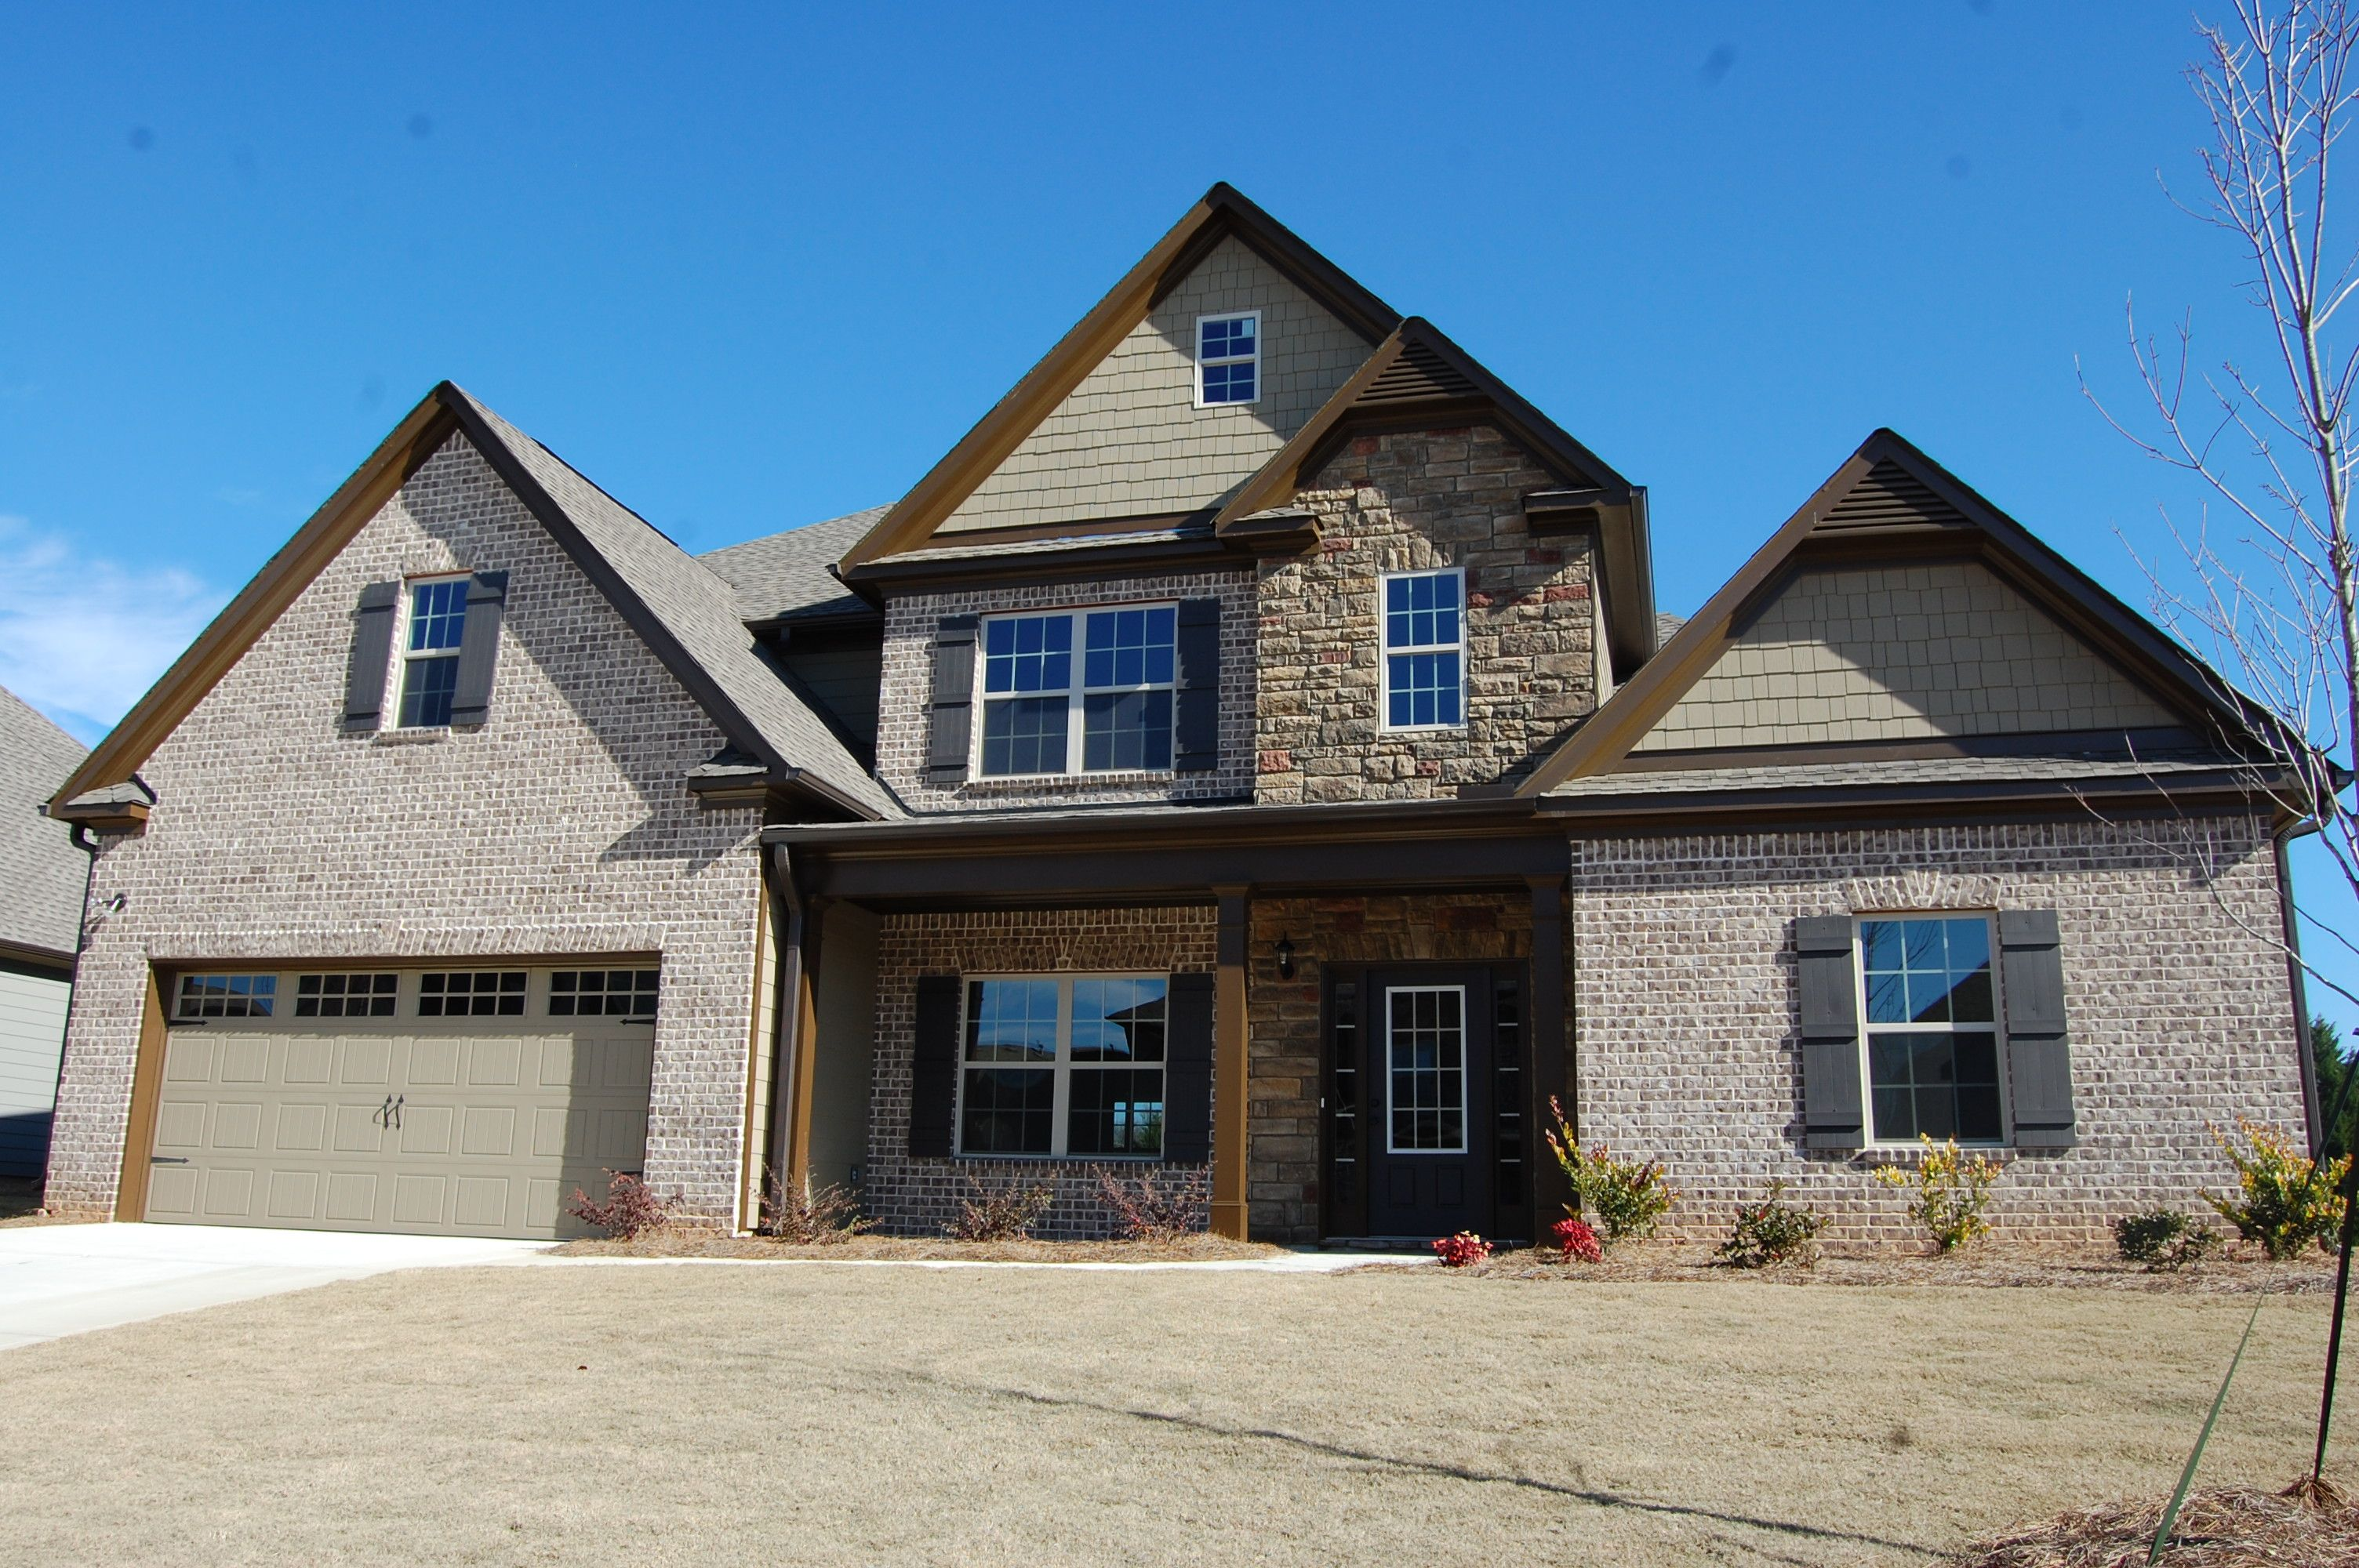 Reliant Home for Sale in Dacula, GA Home for Sale in